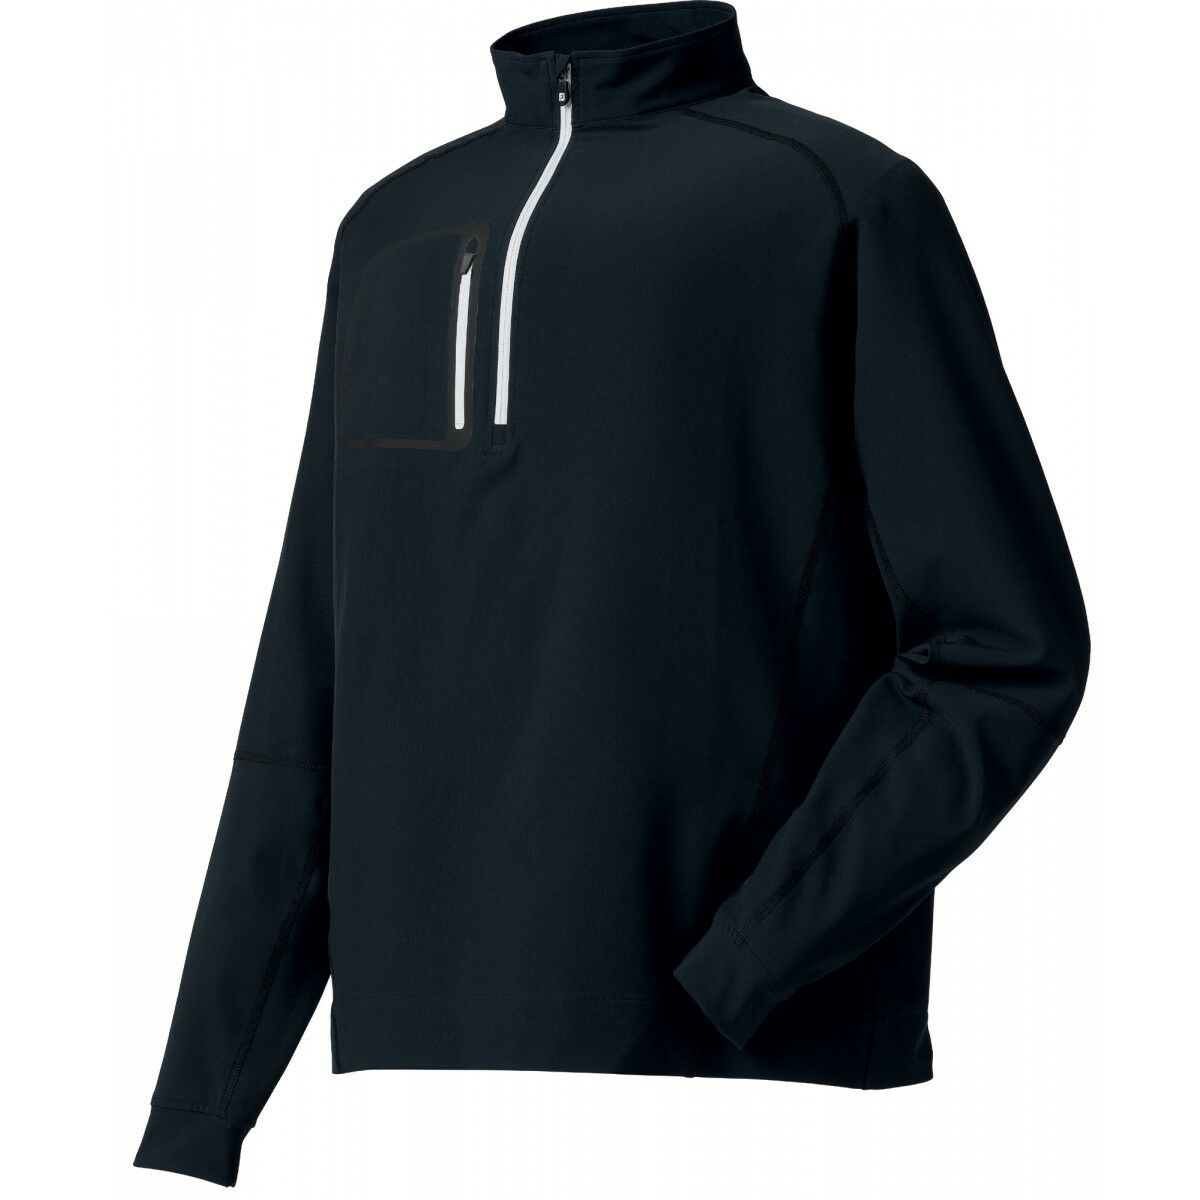 NWT - FJ - FOOTJOY WIND SHELL PULLOVER - 2XL - 23390 - 135 RETAIL - OUTSTANDING